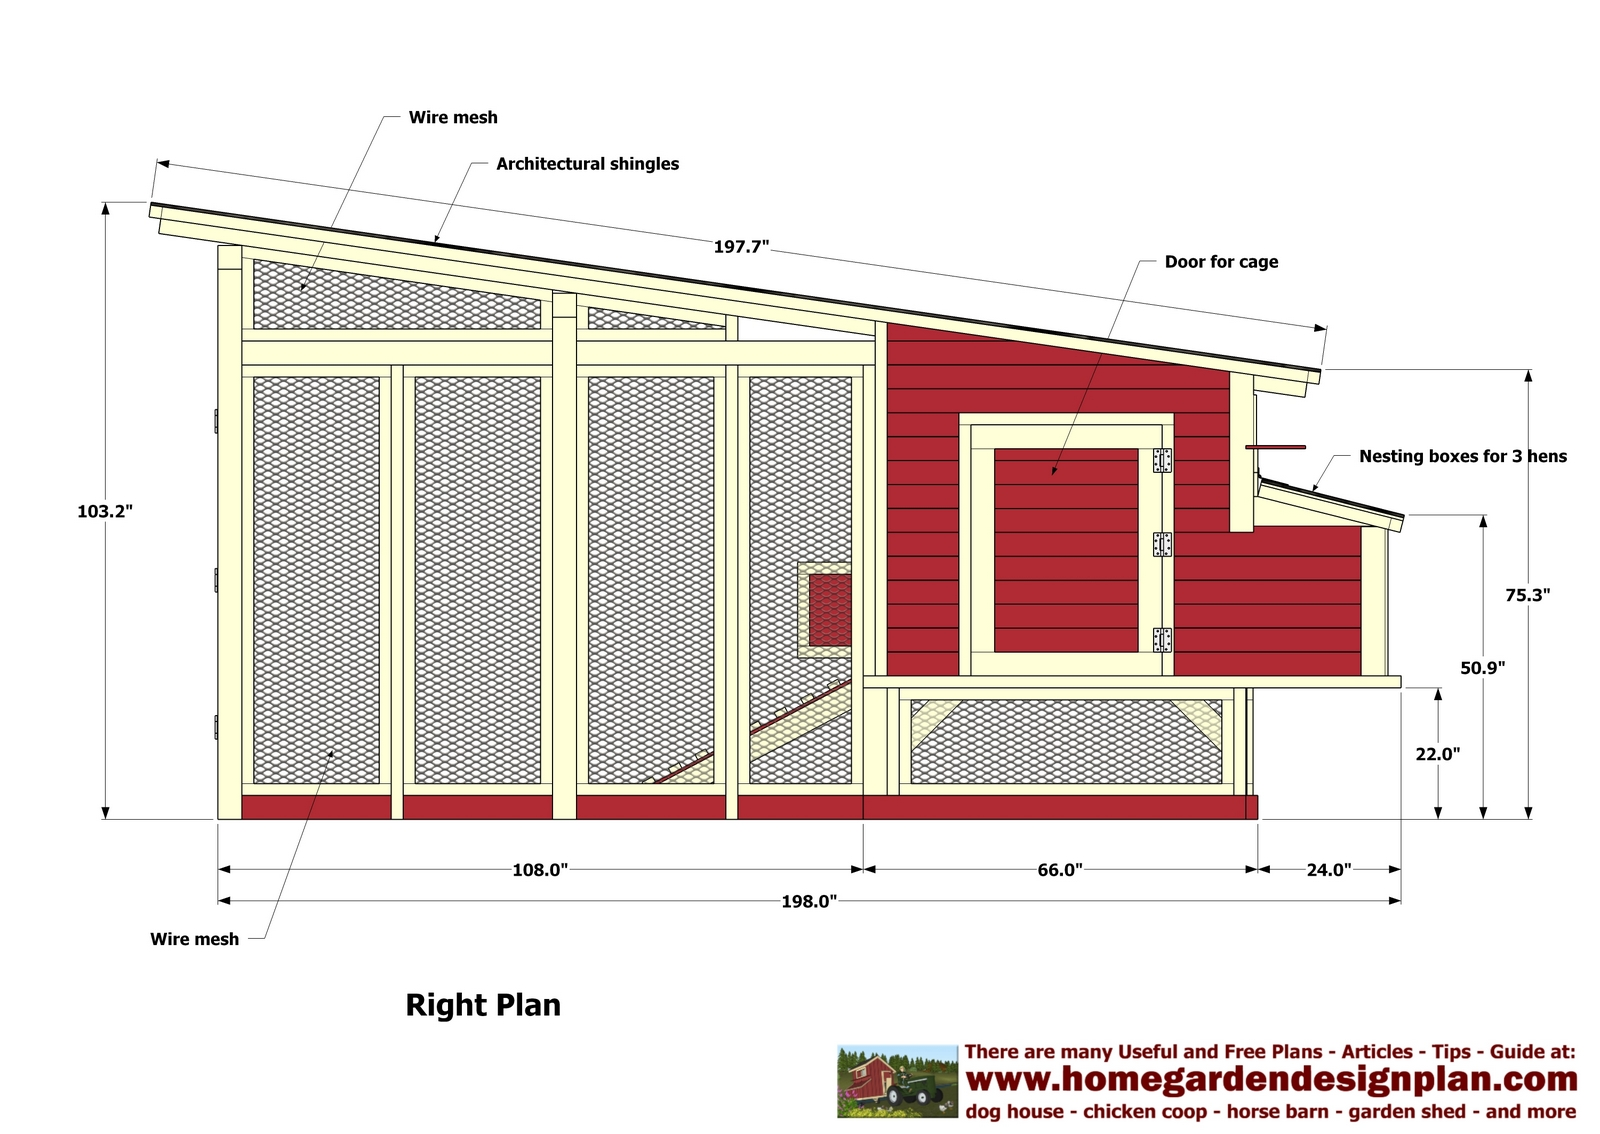 Home garden plans m100 chicken coop plans construction for Plans for a chicken coop for 12 chickens